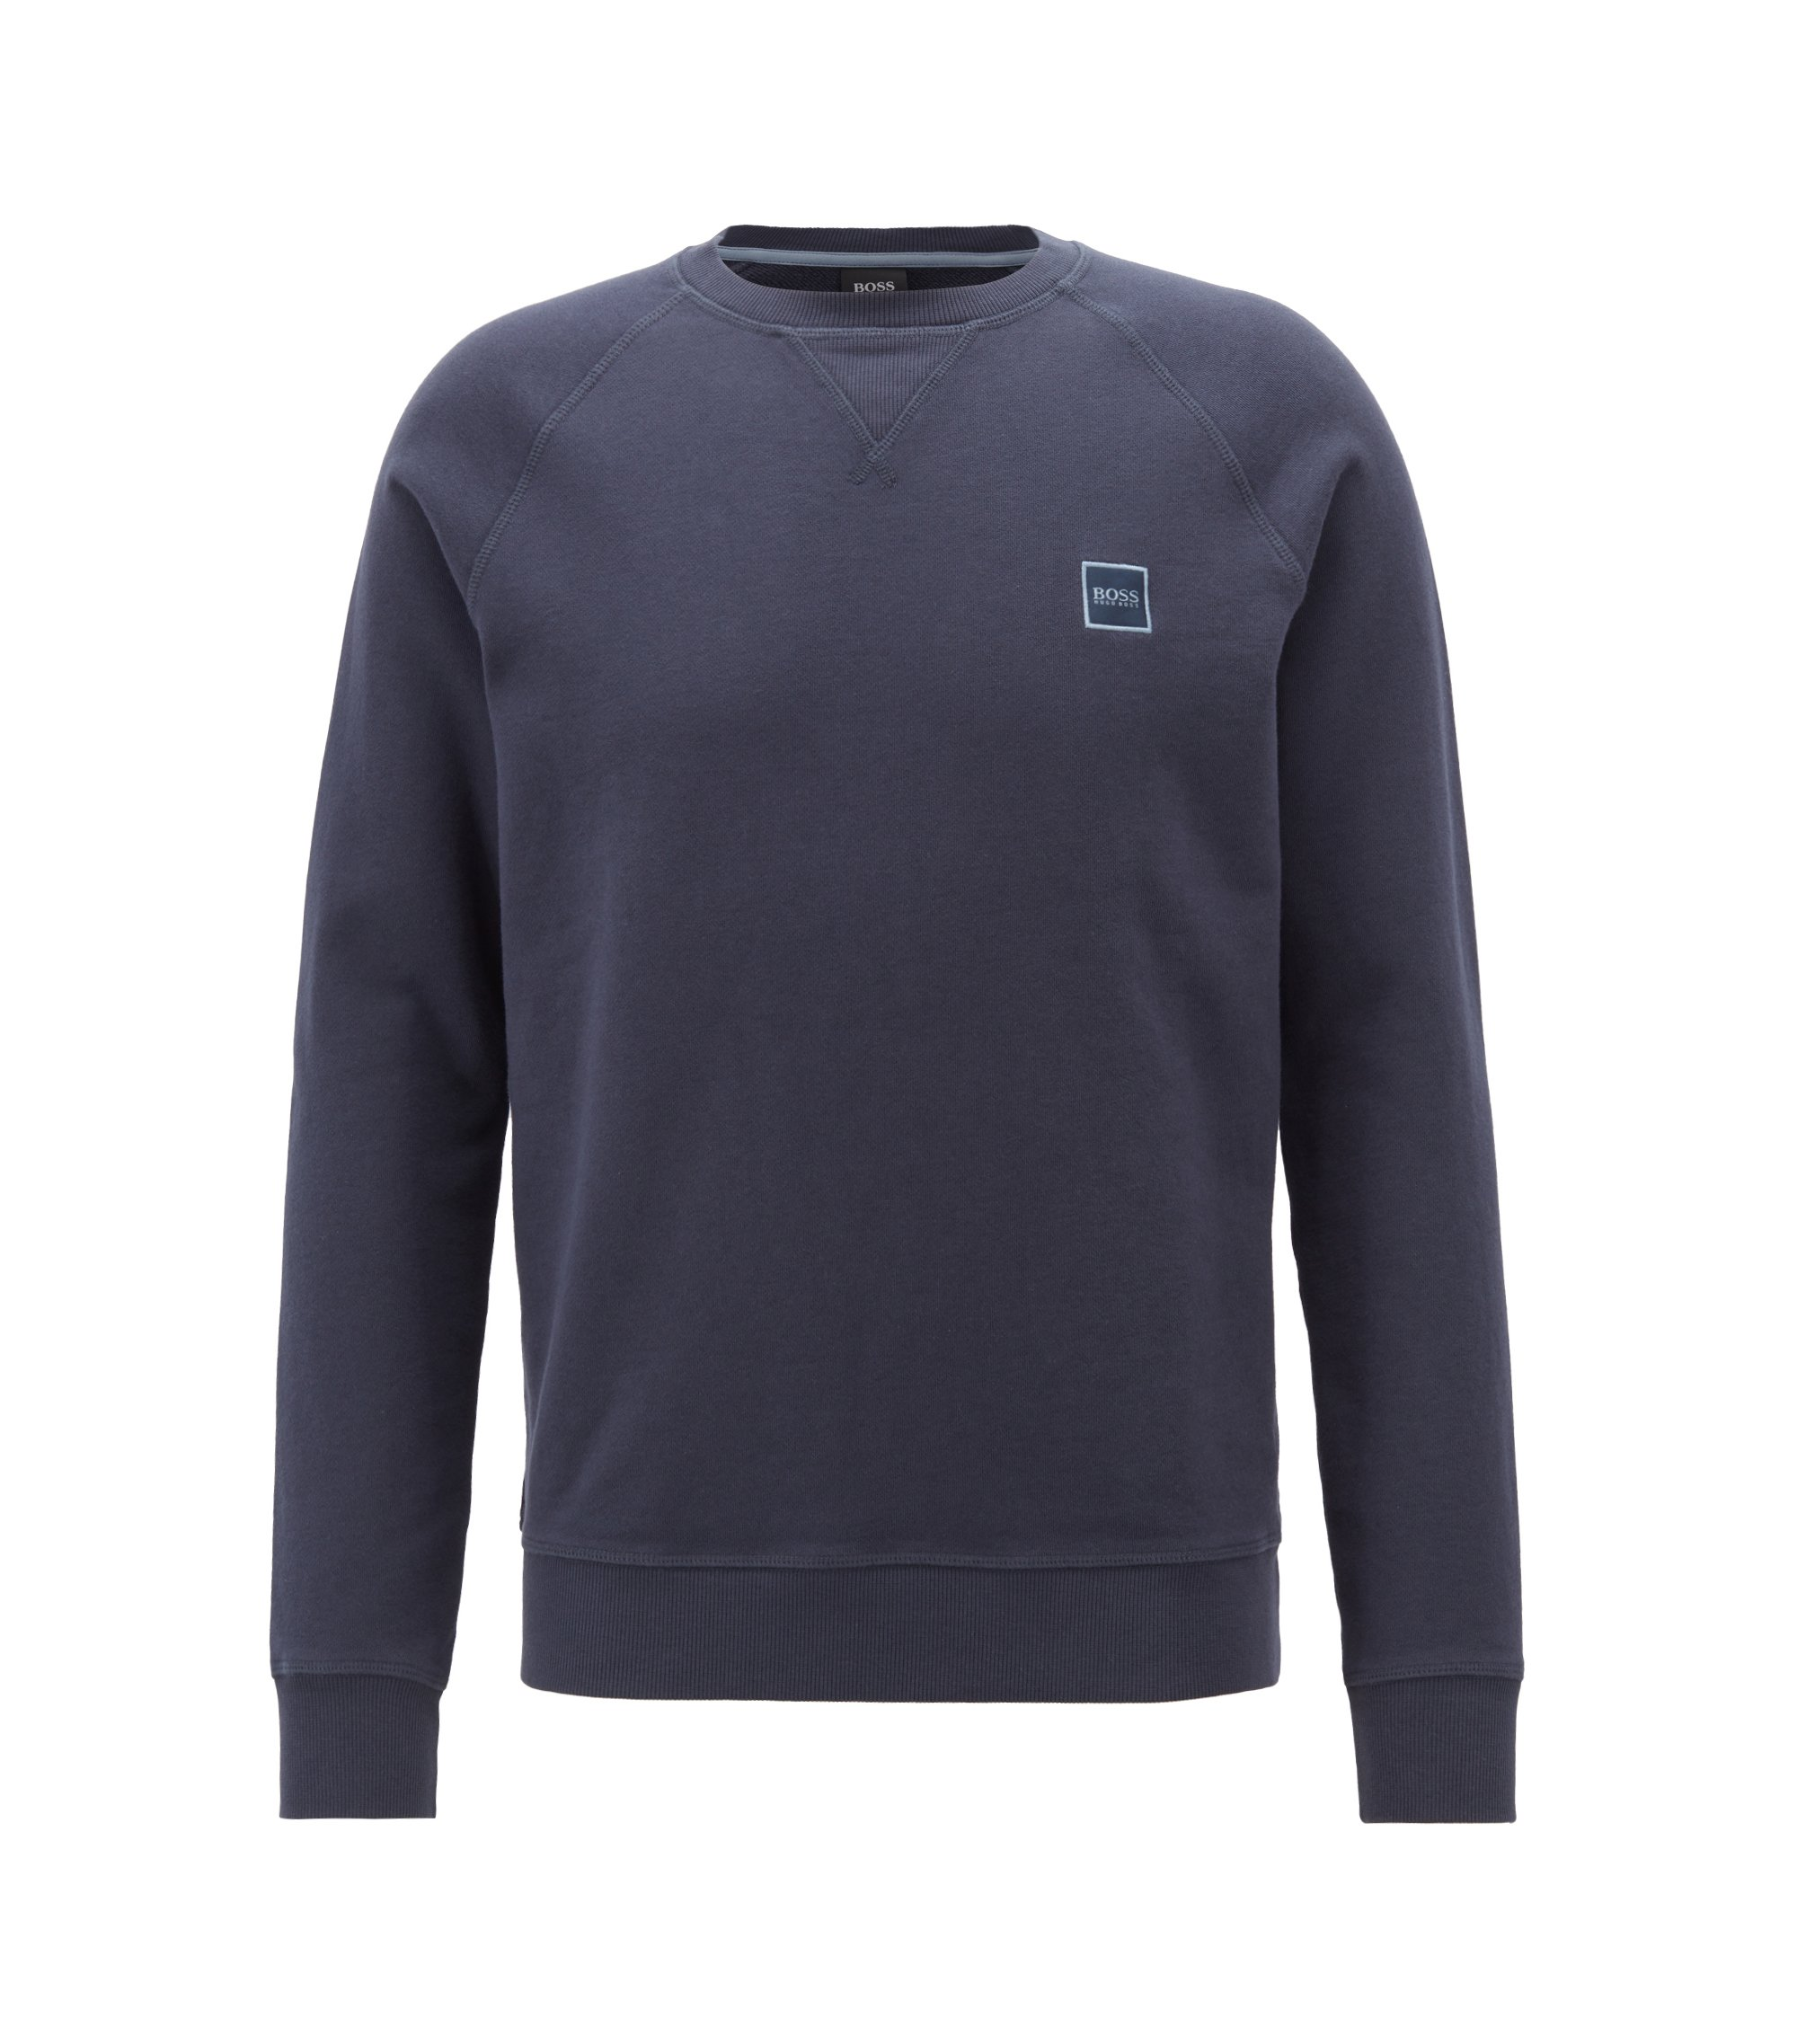 Sweatshirt aus French Terry mit Logo-Patch, Dunkelblau